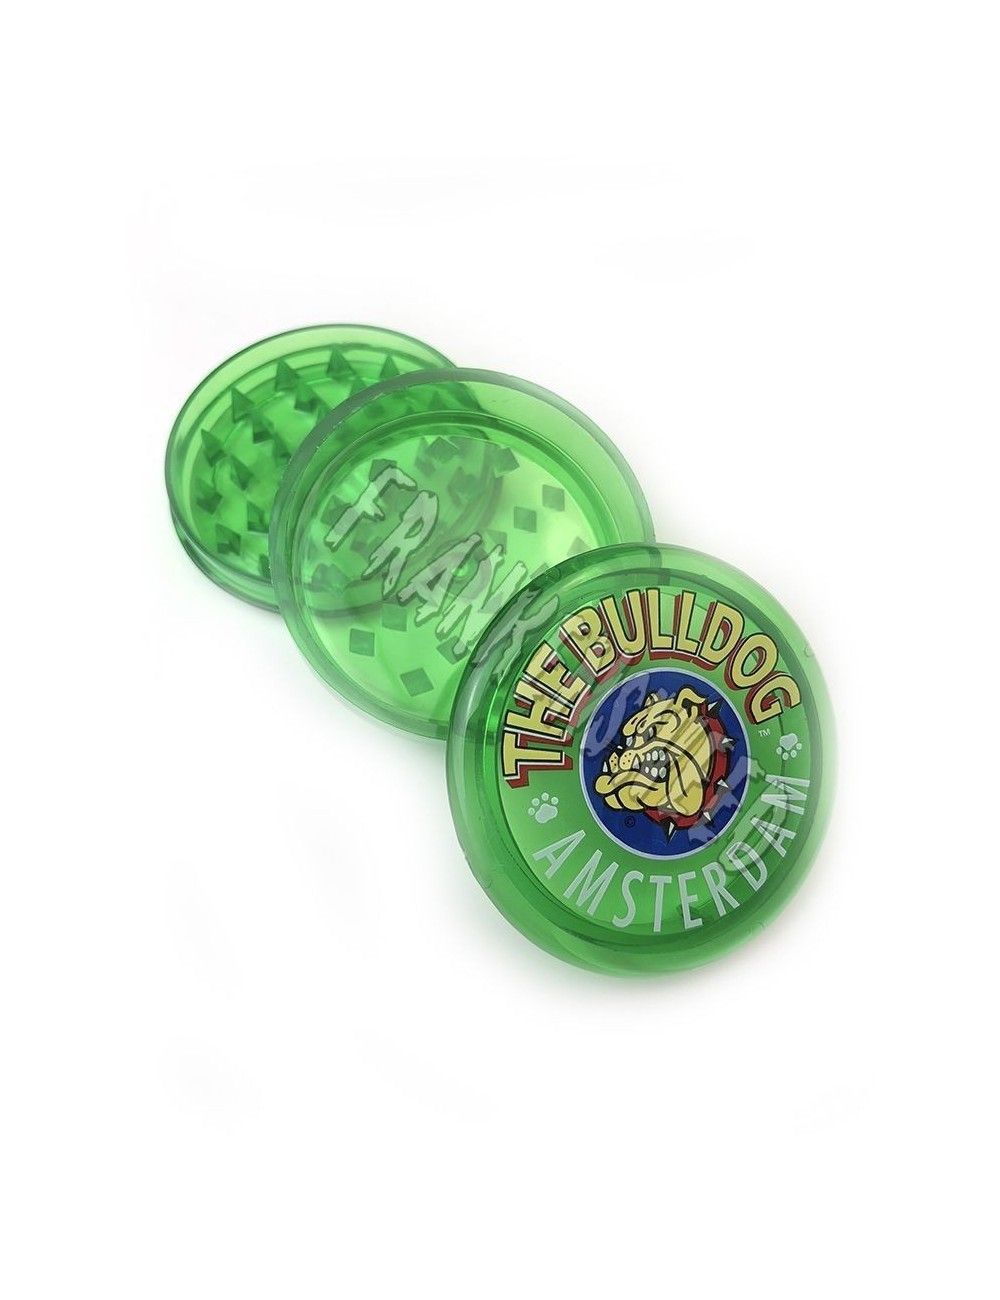 The Bulldog Green Plastic Grinder